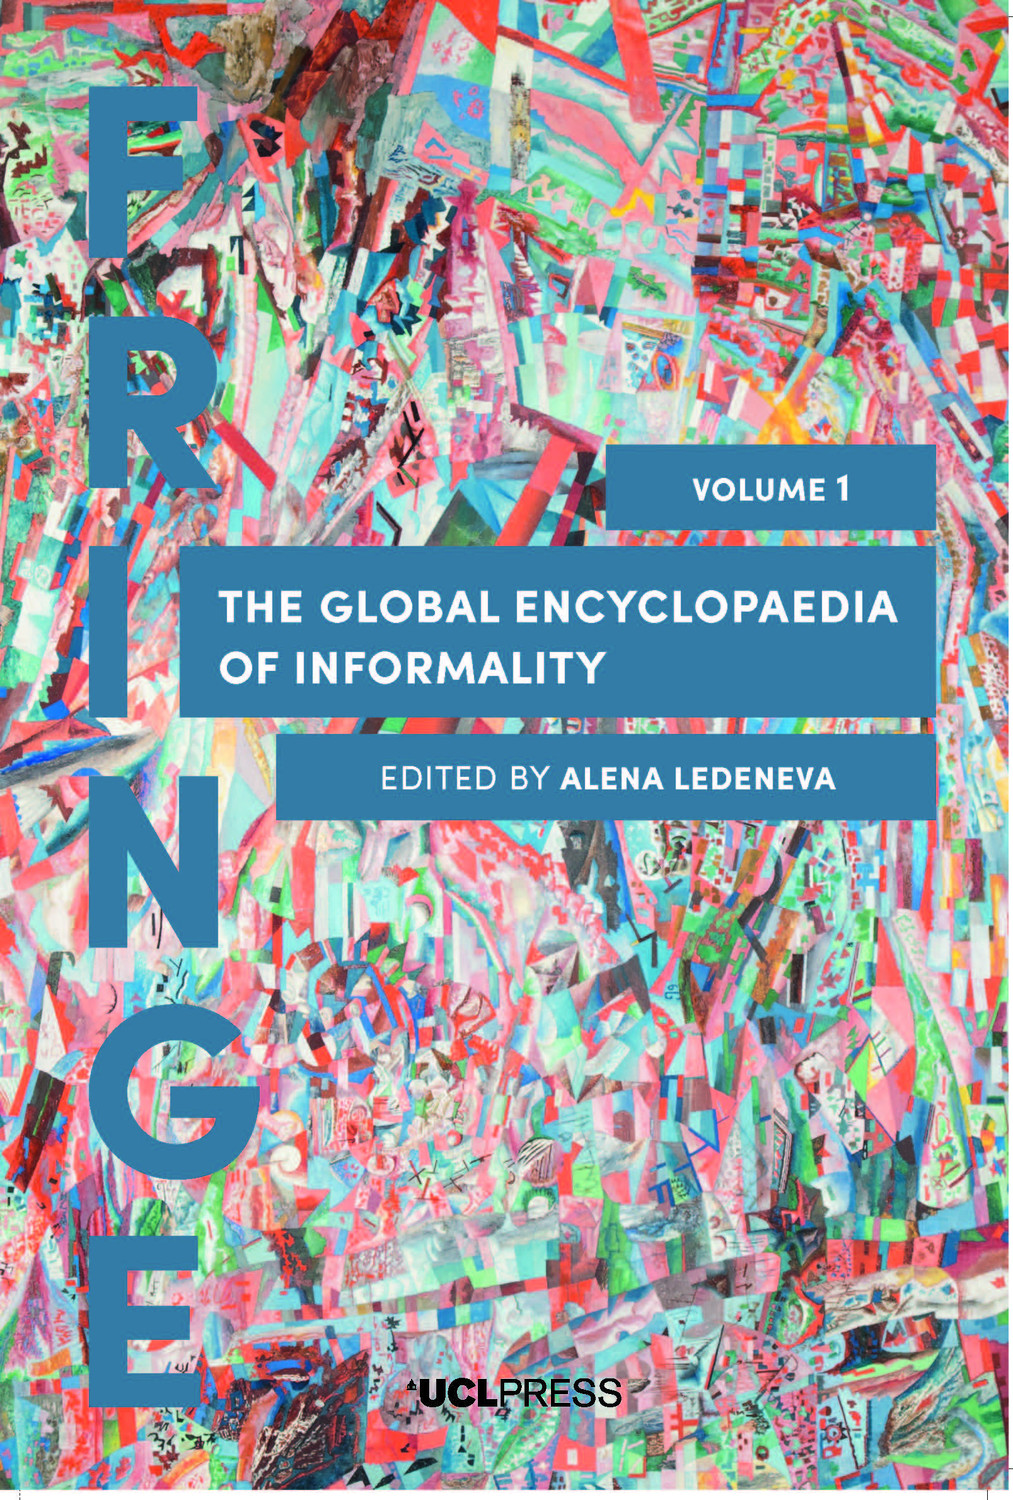 The Global Encyclopaedia of Informality, Volume 1